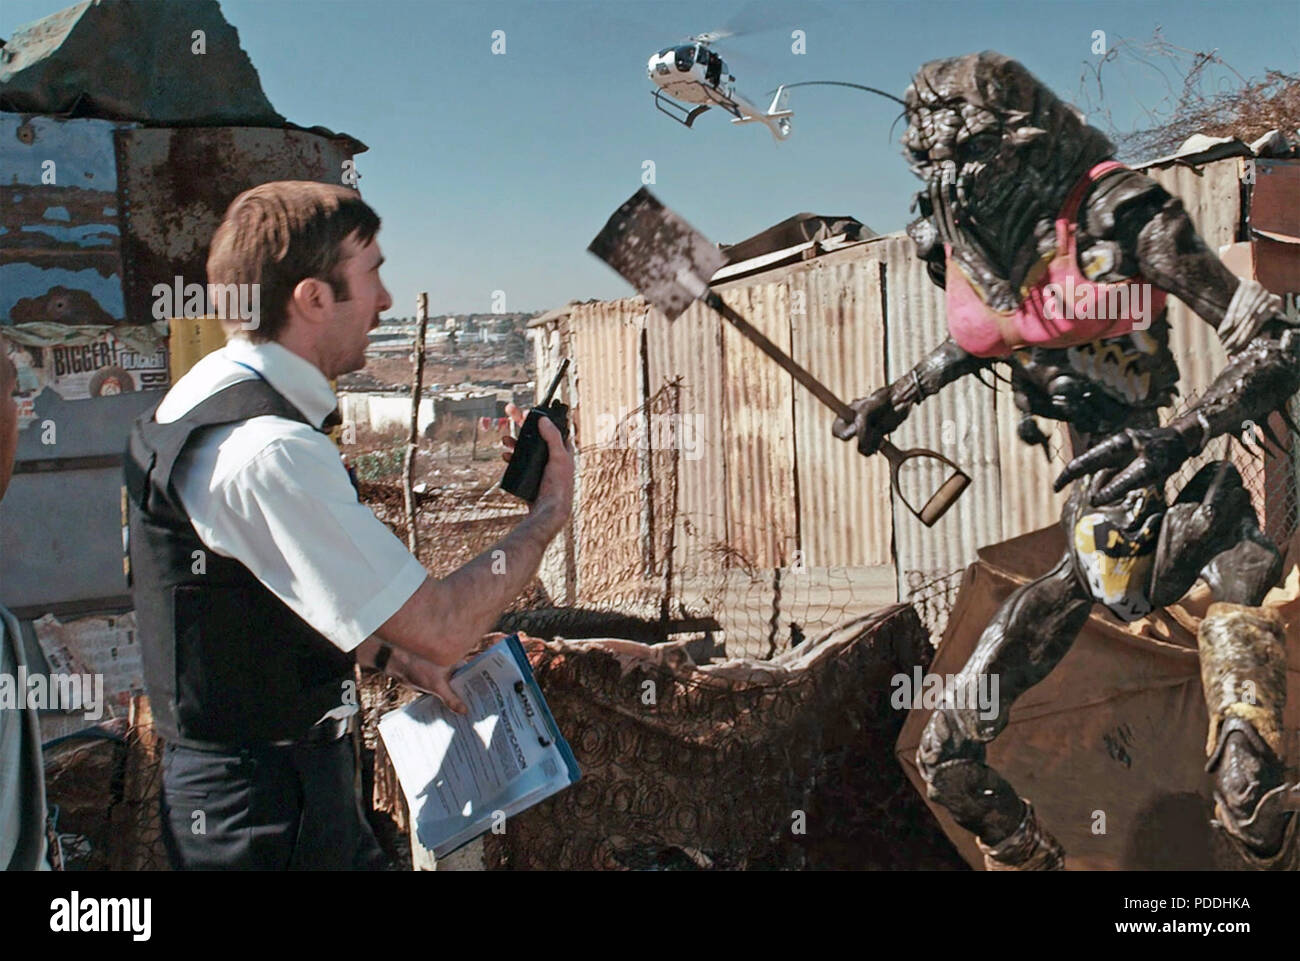 DISTRICT 9  2009 TriStar Pictures film with Sharito Copley at left - Stock Image